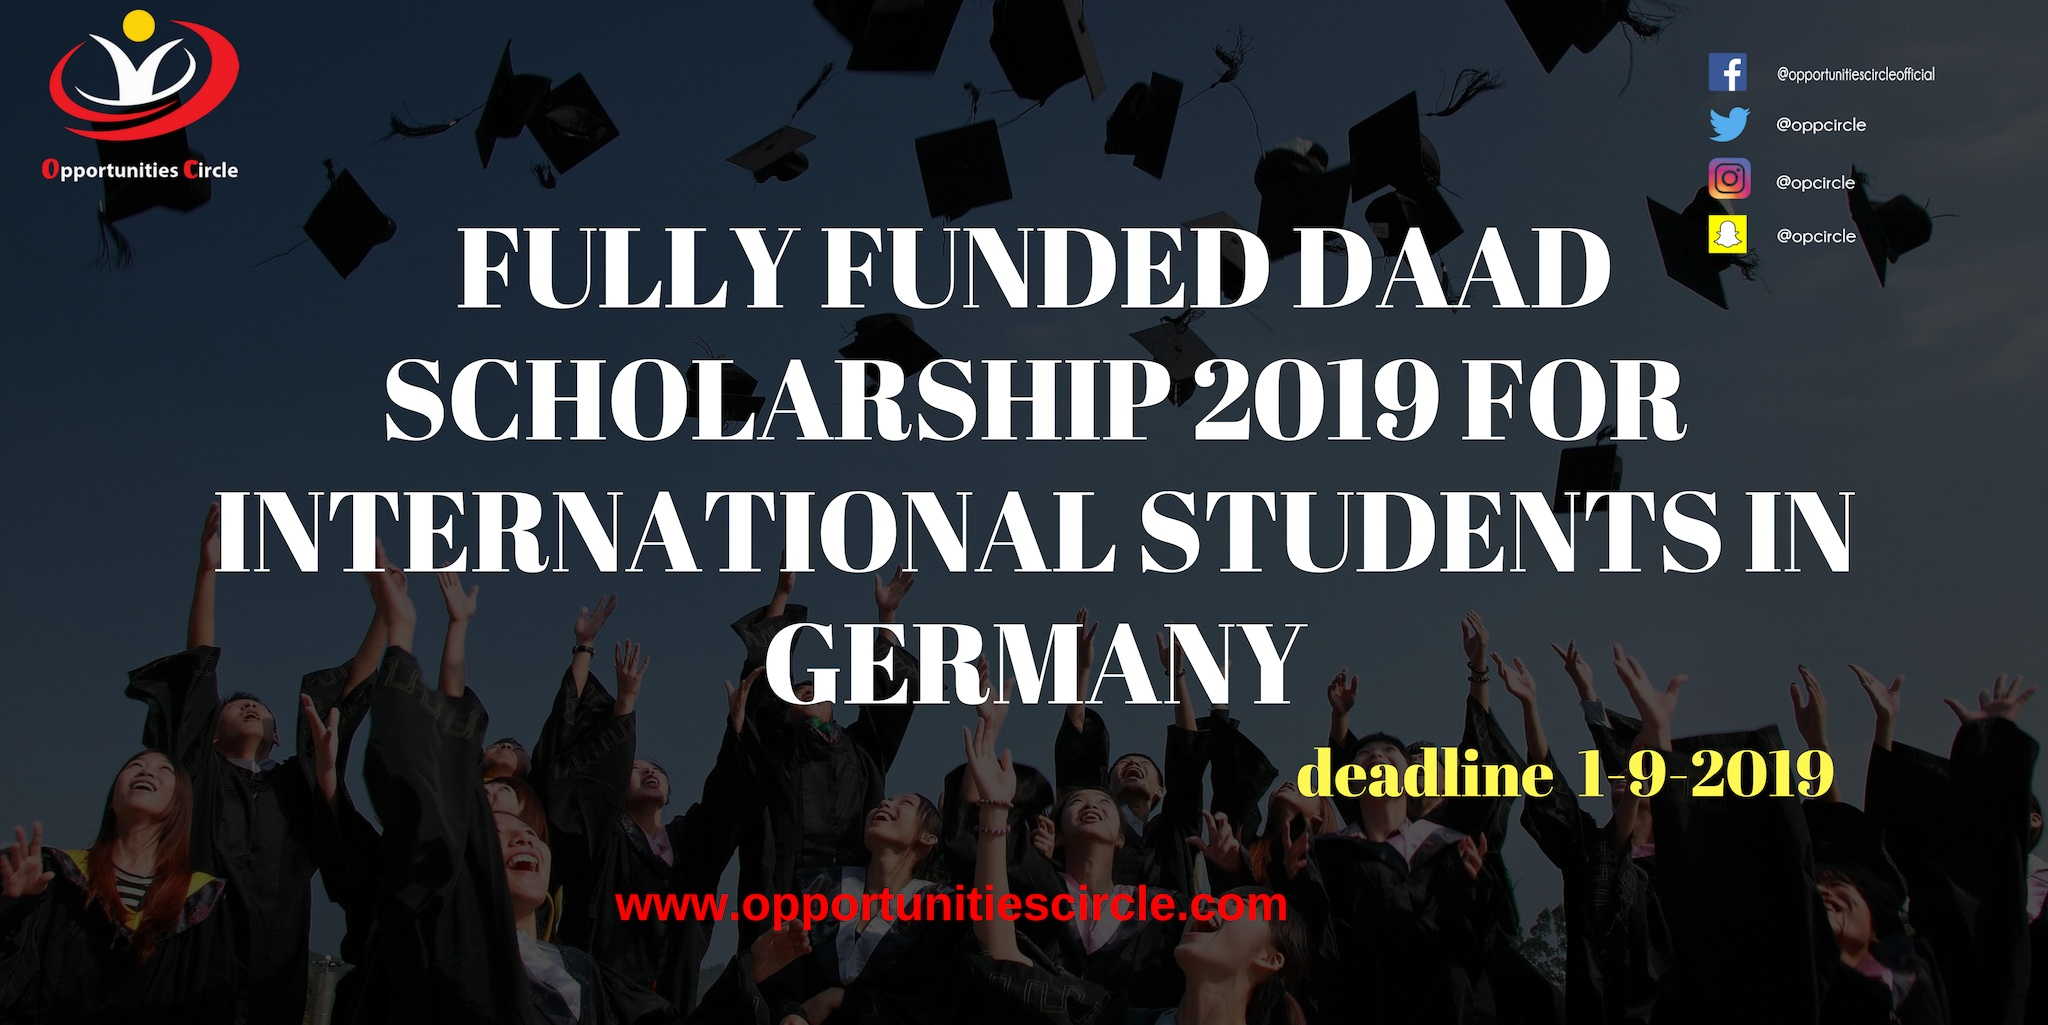 FULLY FUNDED DAAD SCHOLARSHIP 2019 FOR INTERNATIONAL